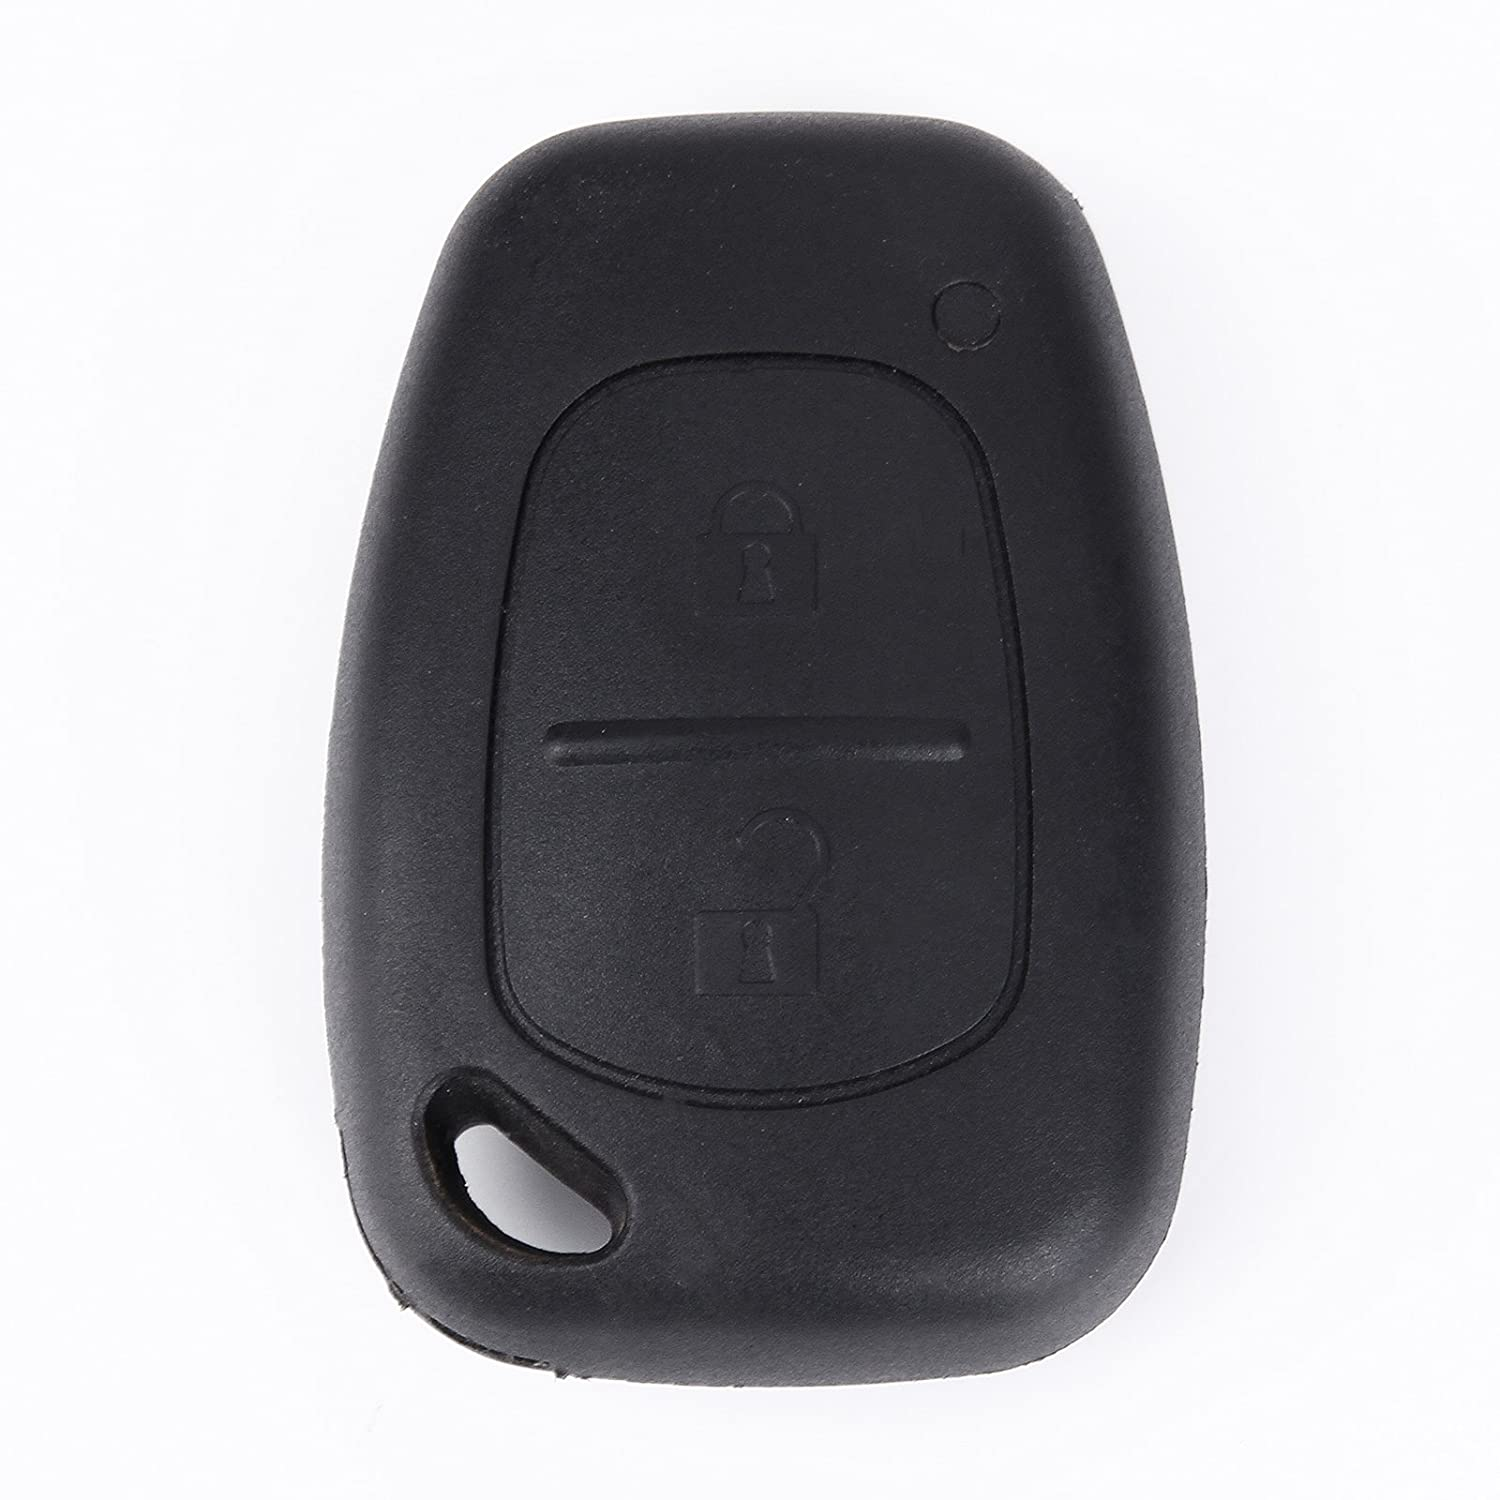 SurePromise One Stop Solution for Sourcing Remote Key Fob Cover Case Shell 2 Button